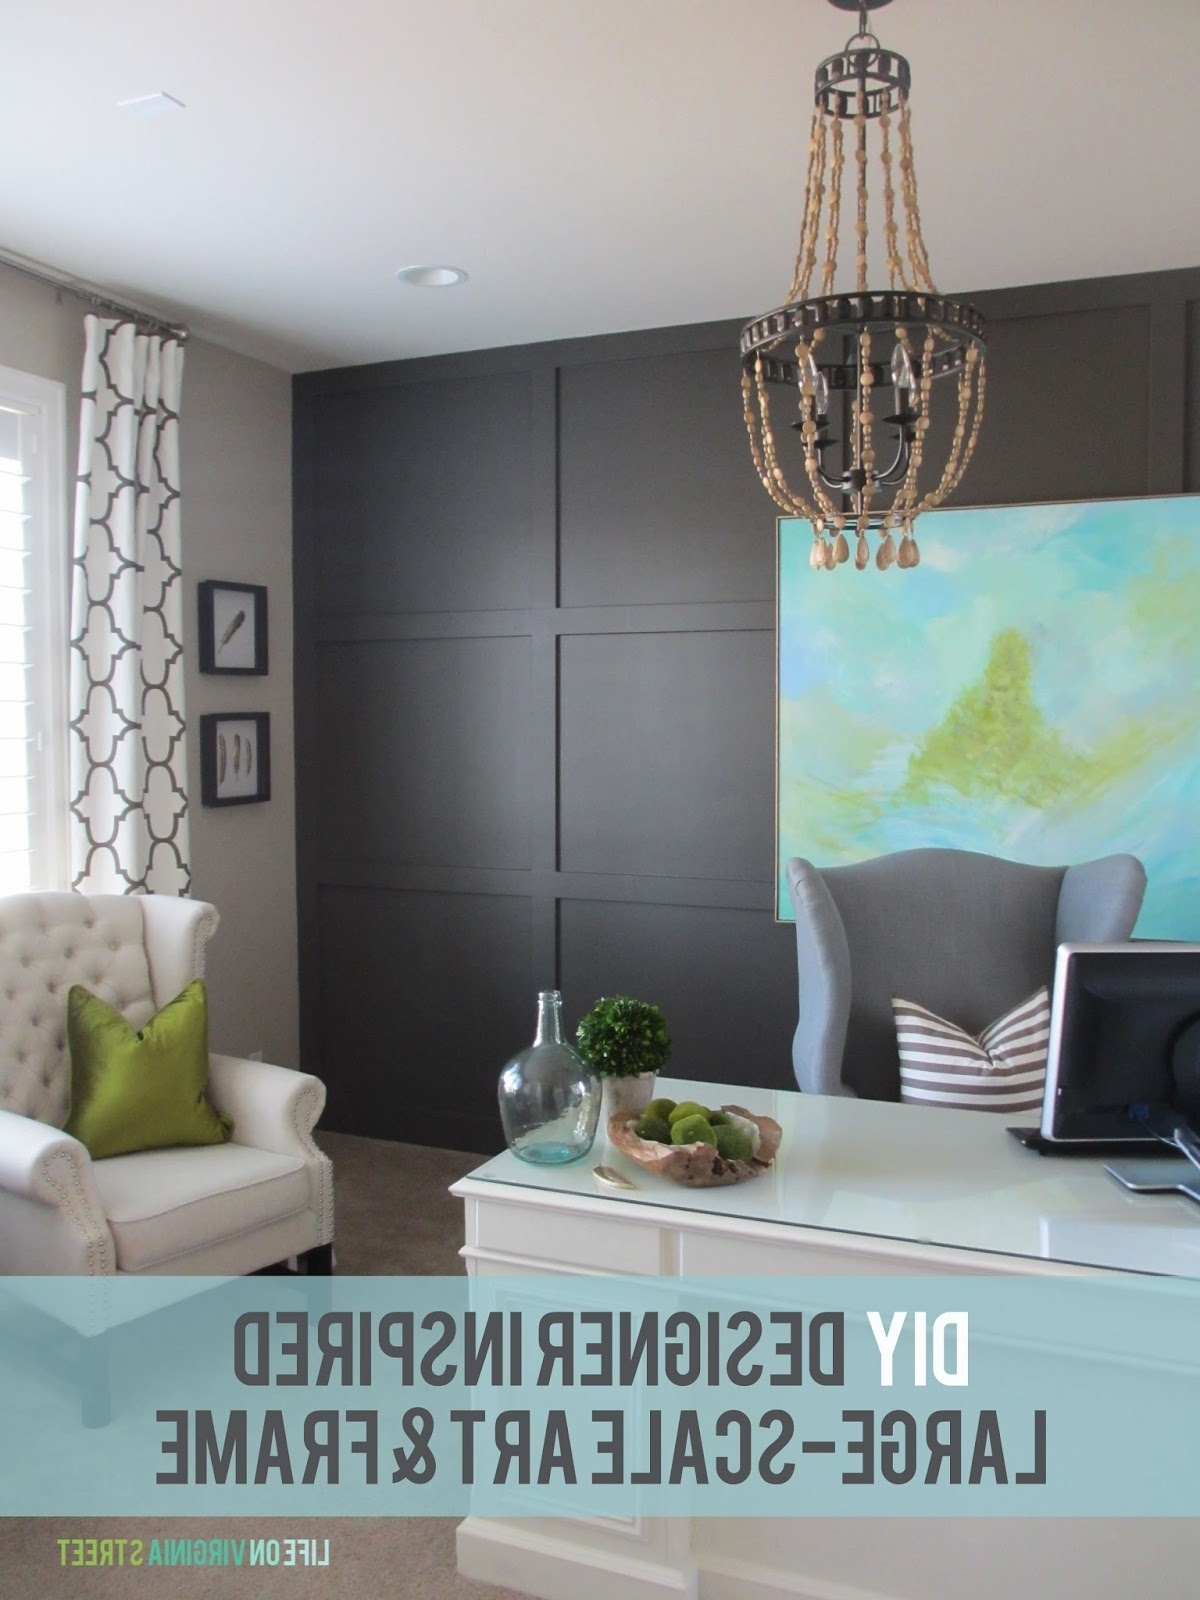 Recent Art For Large Wall Pertaining To Diy Large Scale Art – Designer Inspired! (View 11 of 15)